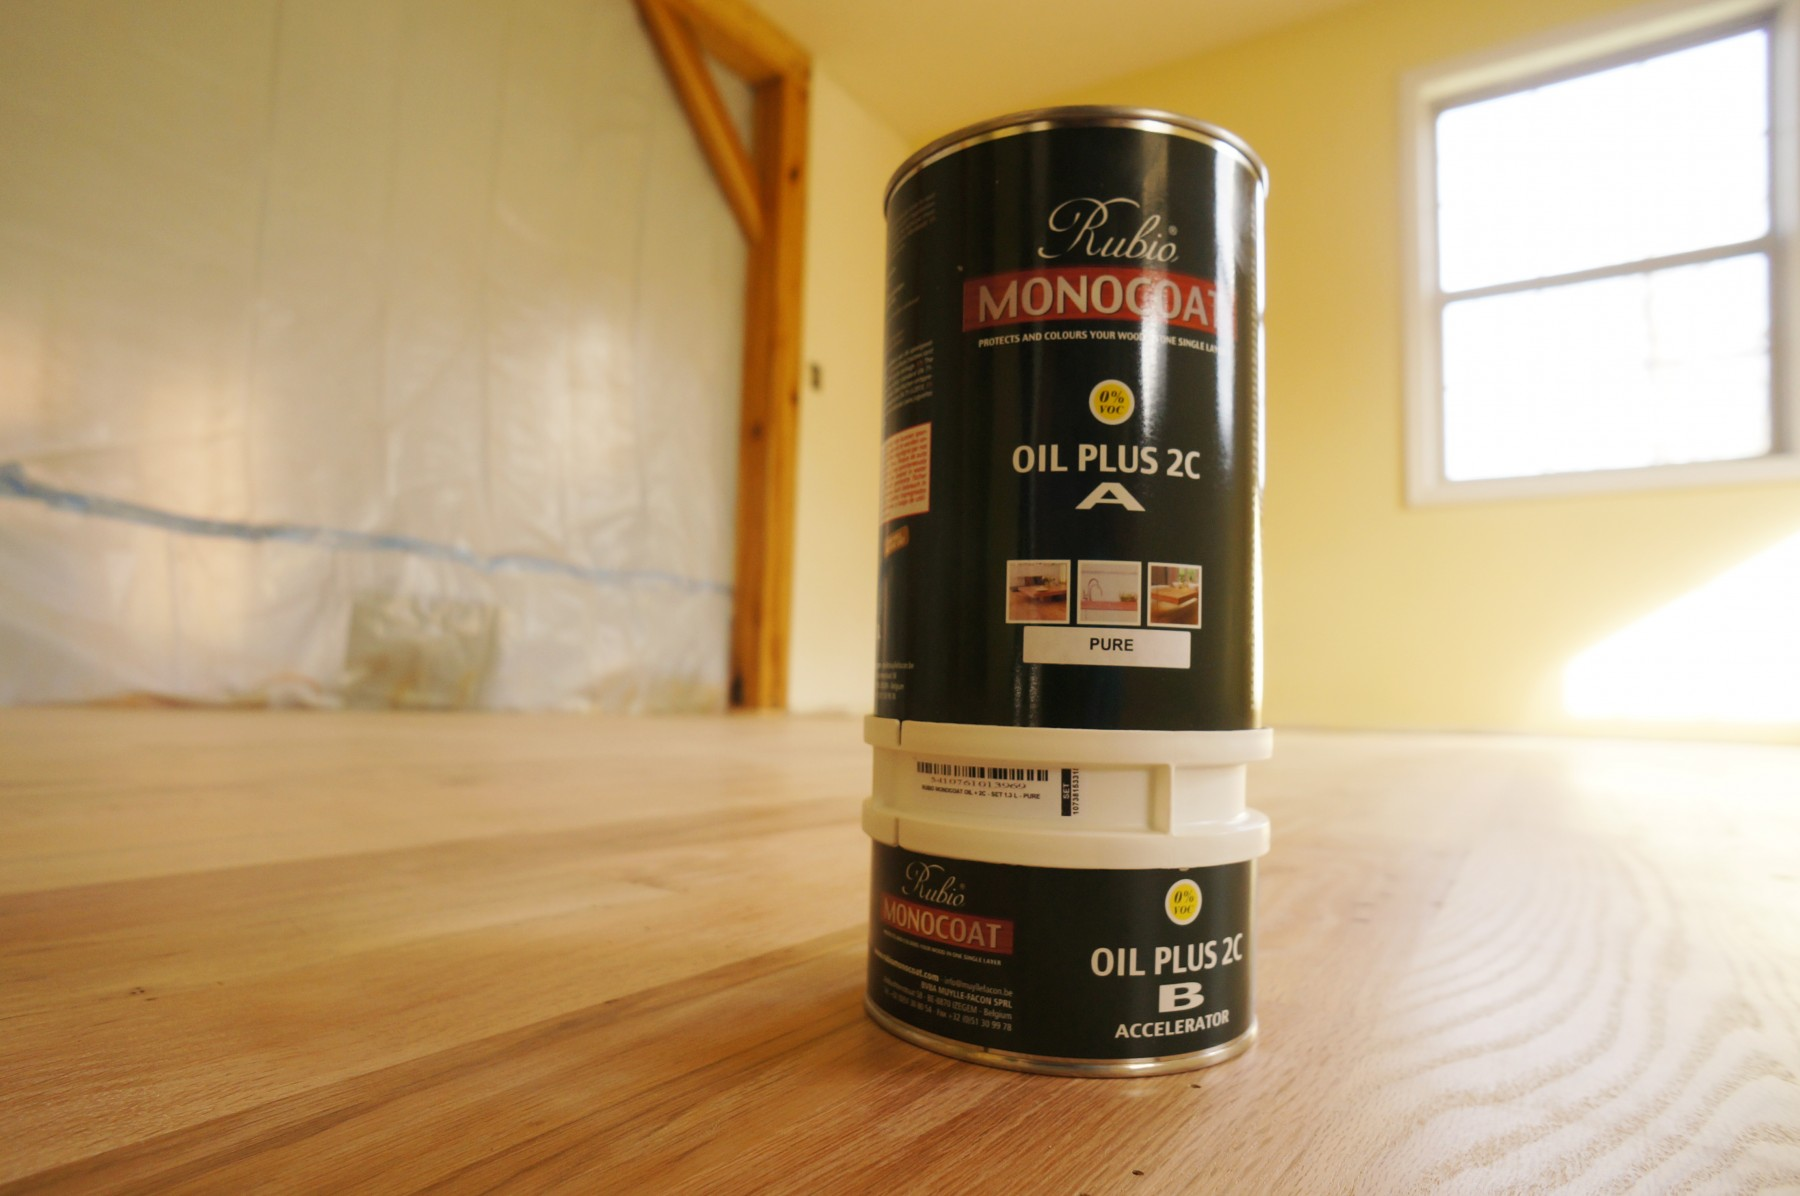 Best Finish For Hardwood Floors living room floor 1 Rubio Monocoat Oil Plus 2c